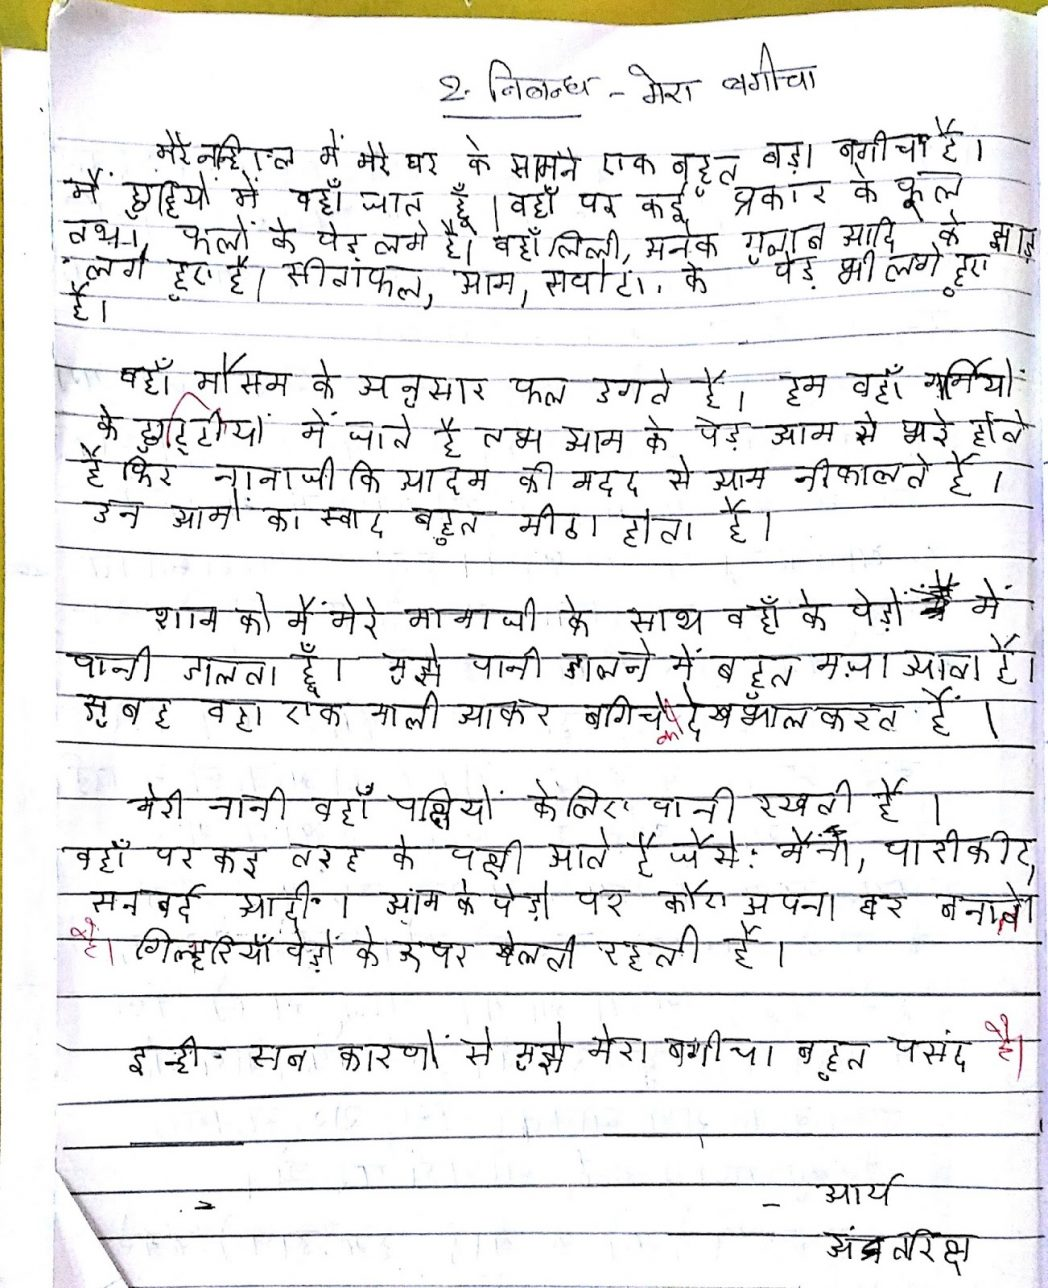 004 Essay On Garden My For Kids In Hindi Gardening Writing 1048x1288 Stunning By Henk Gerritsen Sanskrit Language Full